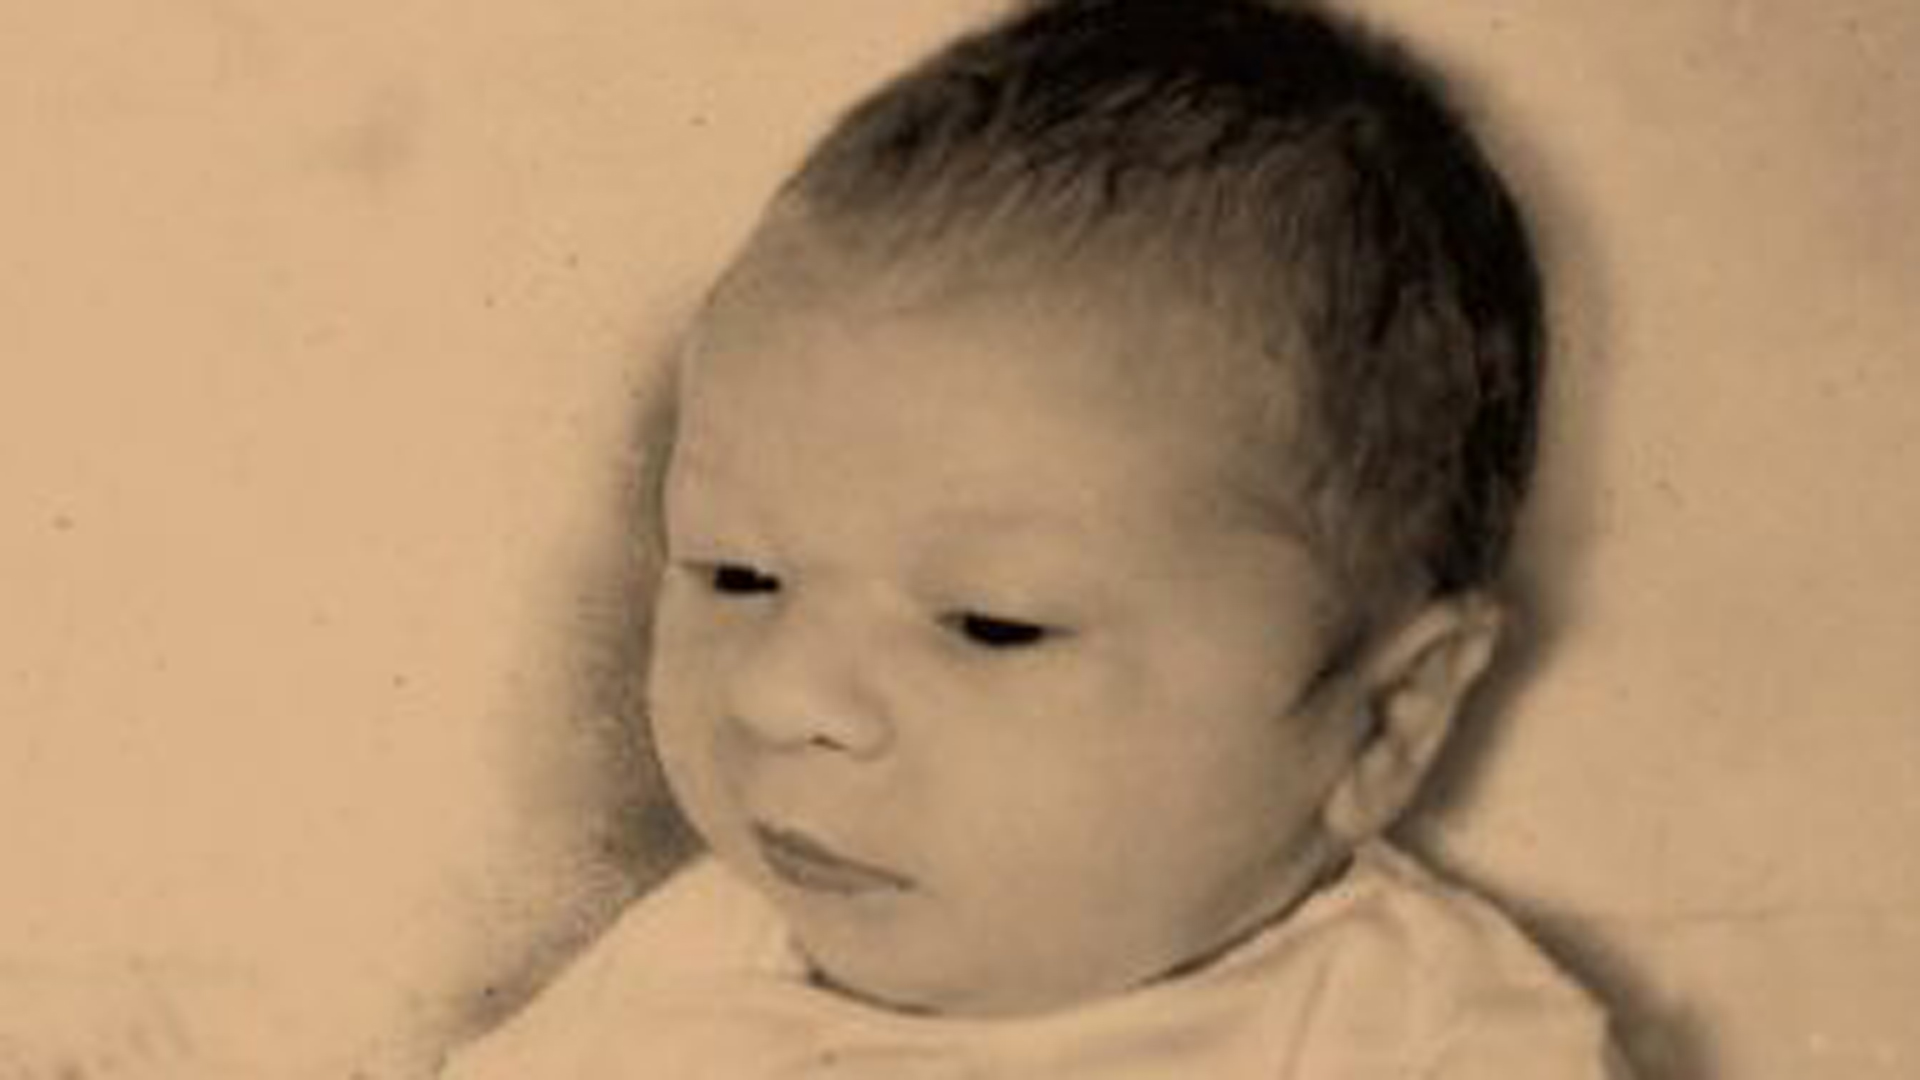 This April 26, 1964, file photo shows newborn Paul Joseph Fronczak shortly after his birth at Michael Reese Hospital in Chicago. (Credit: WGN)